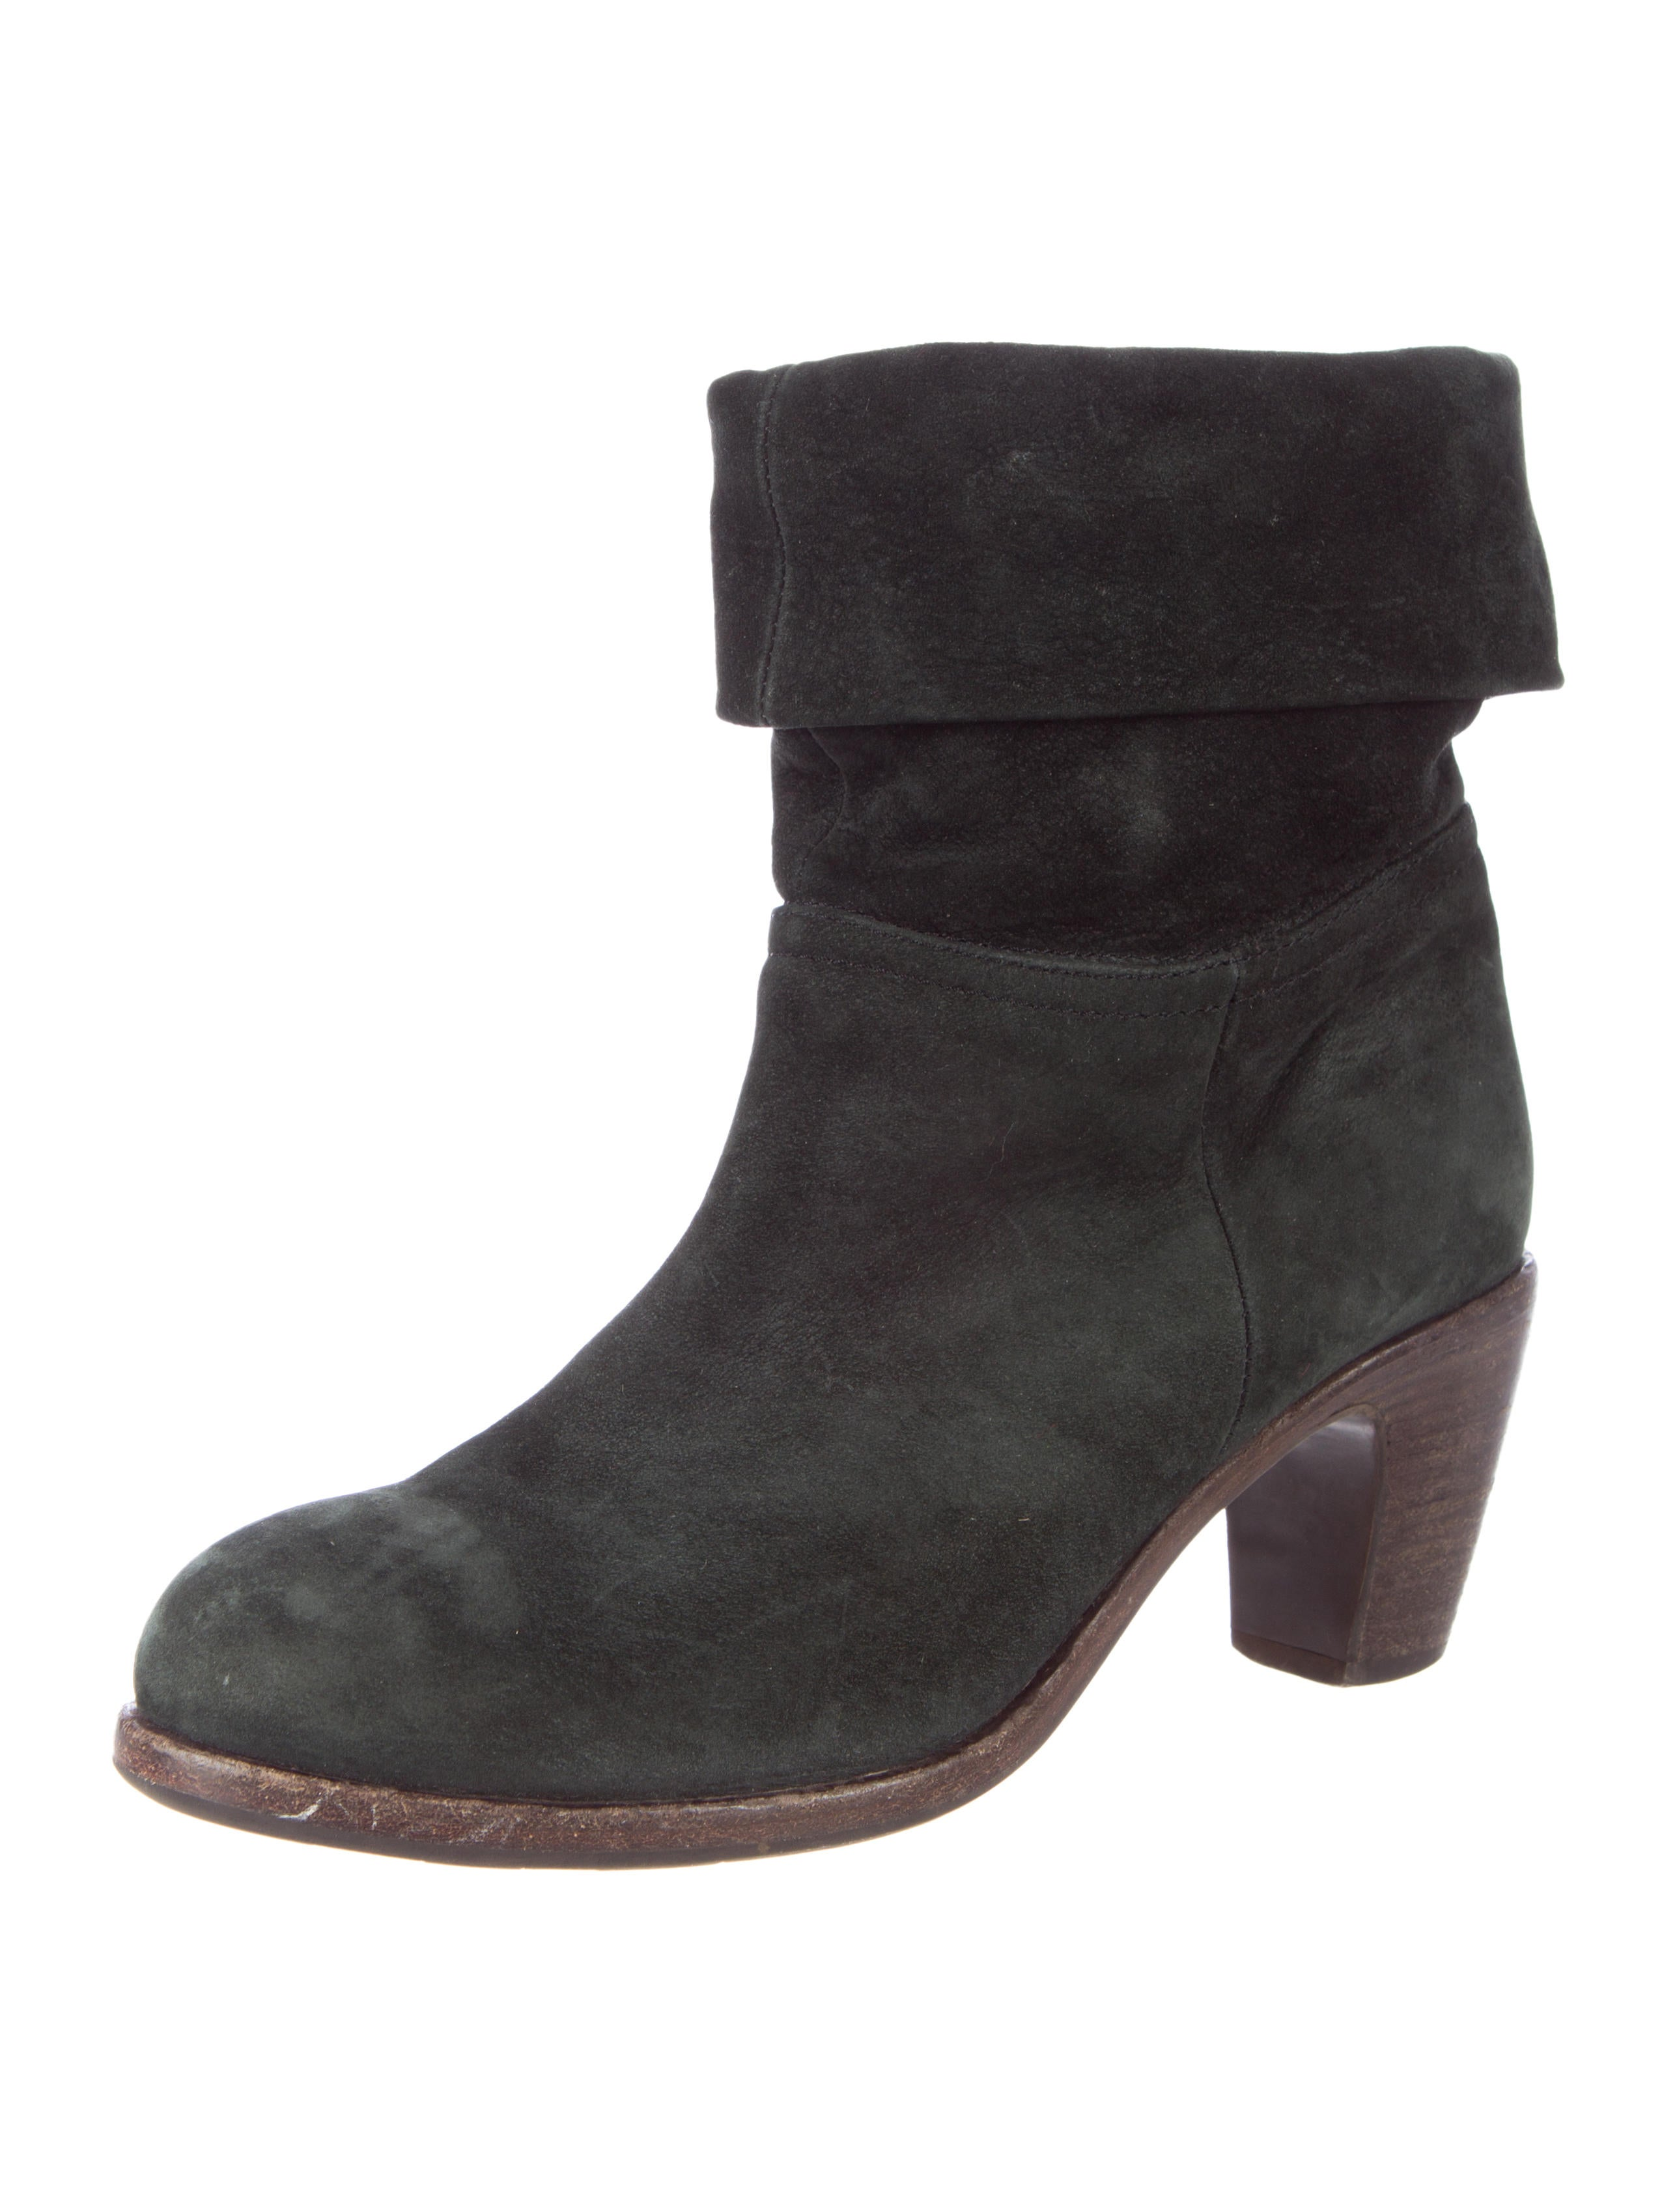 fiorentini baker ankle boots shoes wfb20148 the